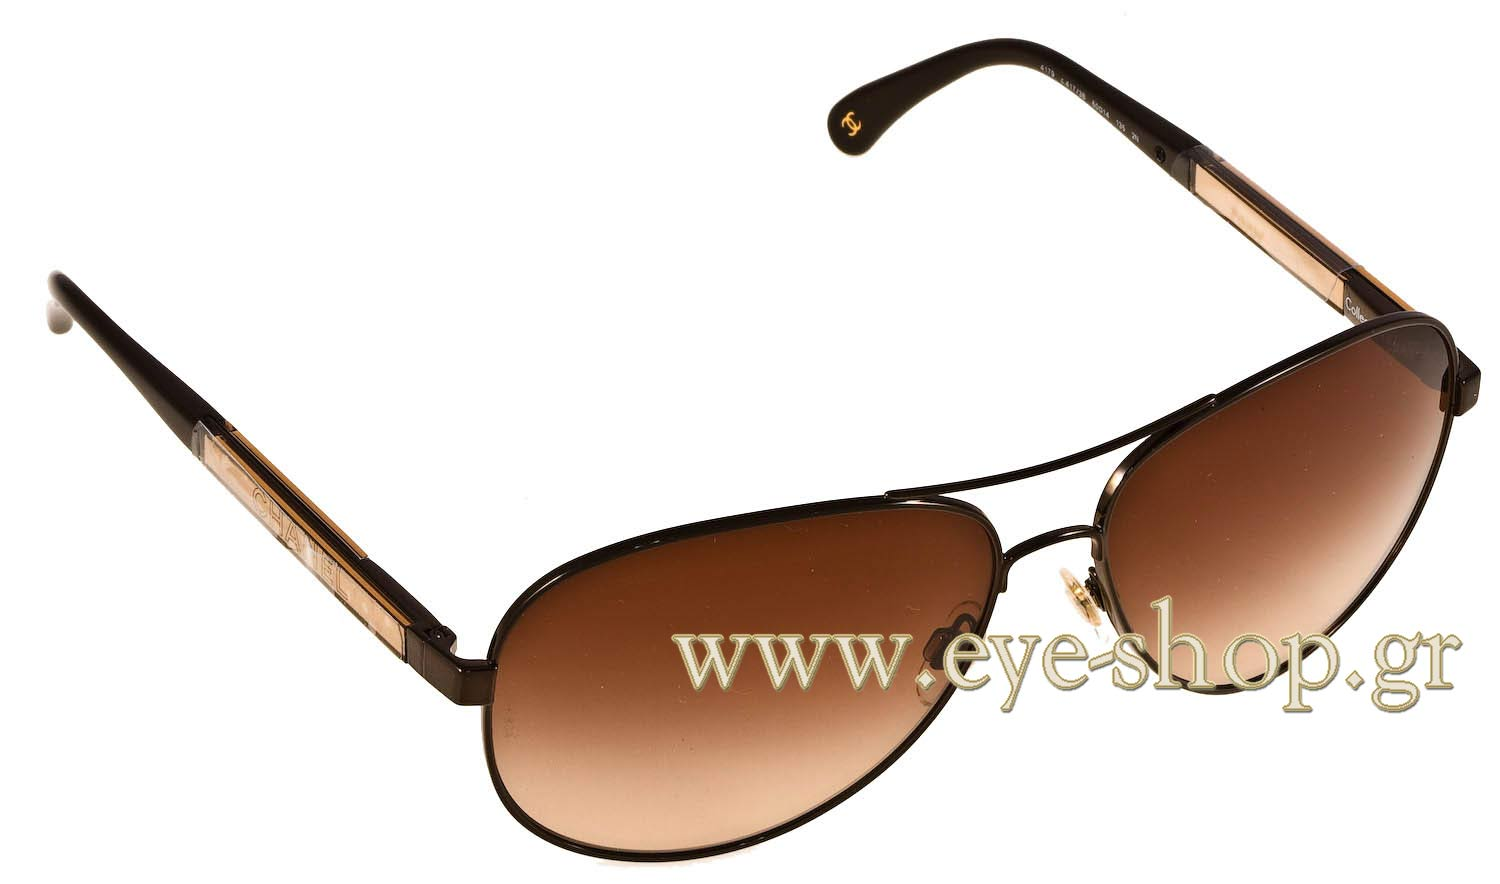 0 chanel 4179 c4173b col 60 women 2017 eyeshop ver1